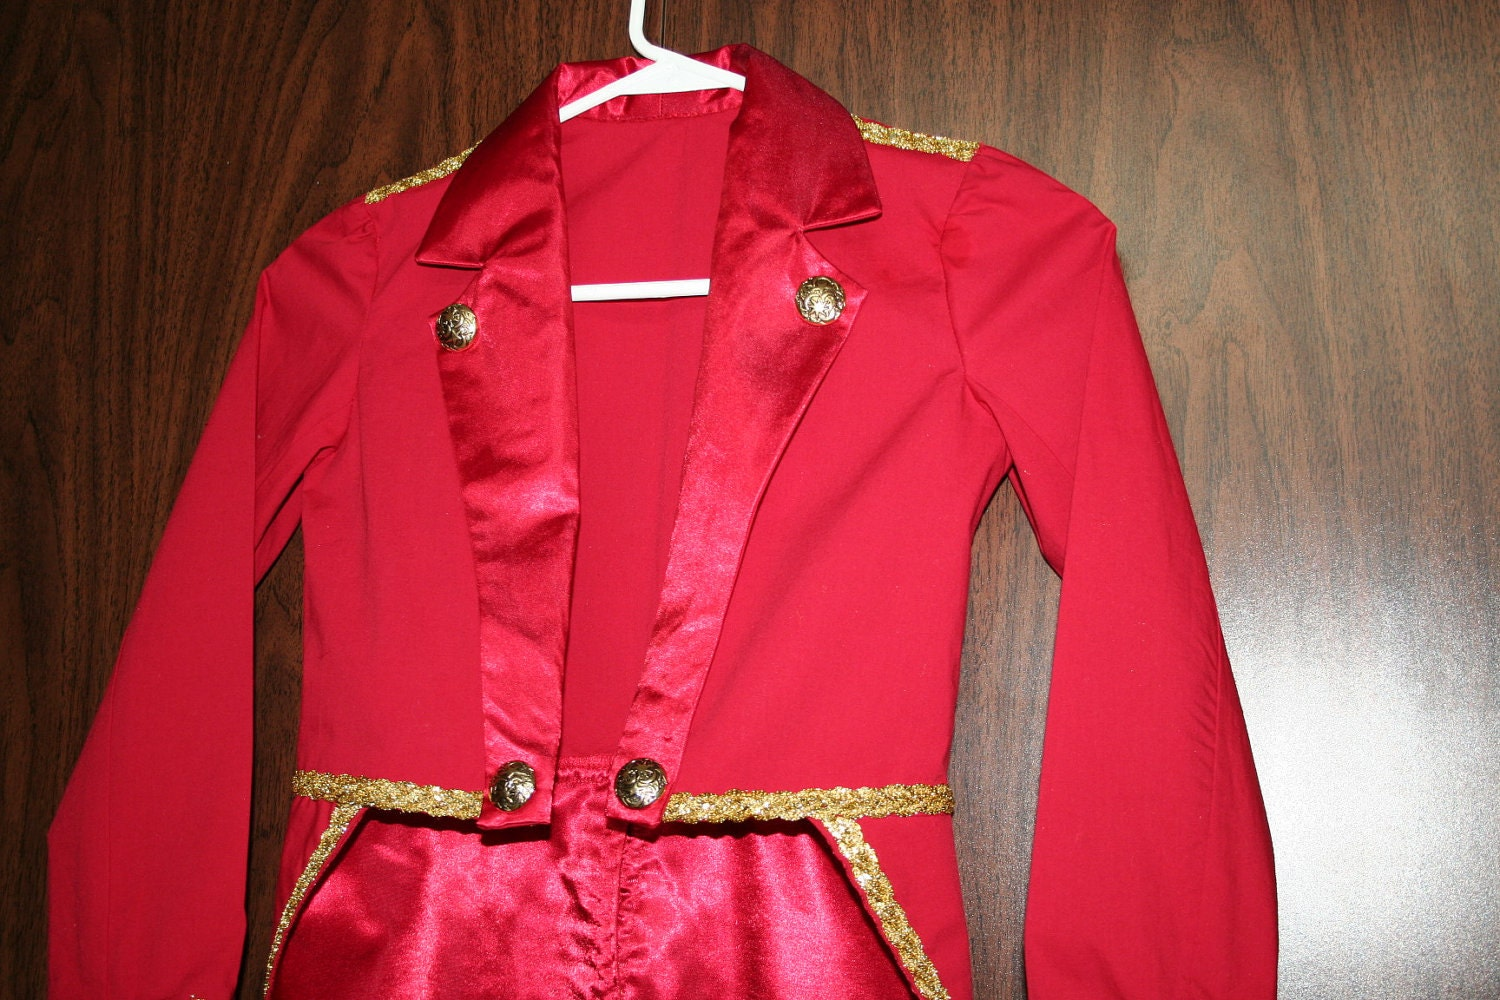 Ringmaster Costume, Ringleader Costume, Women's Ringmaster Jacket, Ringleader Coat, Lion Tamer Costume, 4th of July, Red White and Blue TrappedInTimeDesigns 5 out of 5 stars.